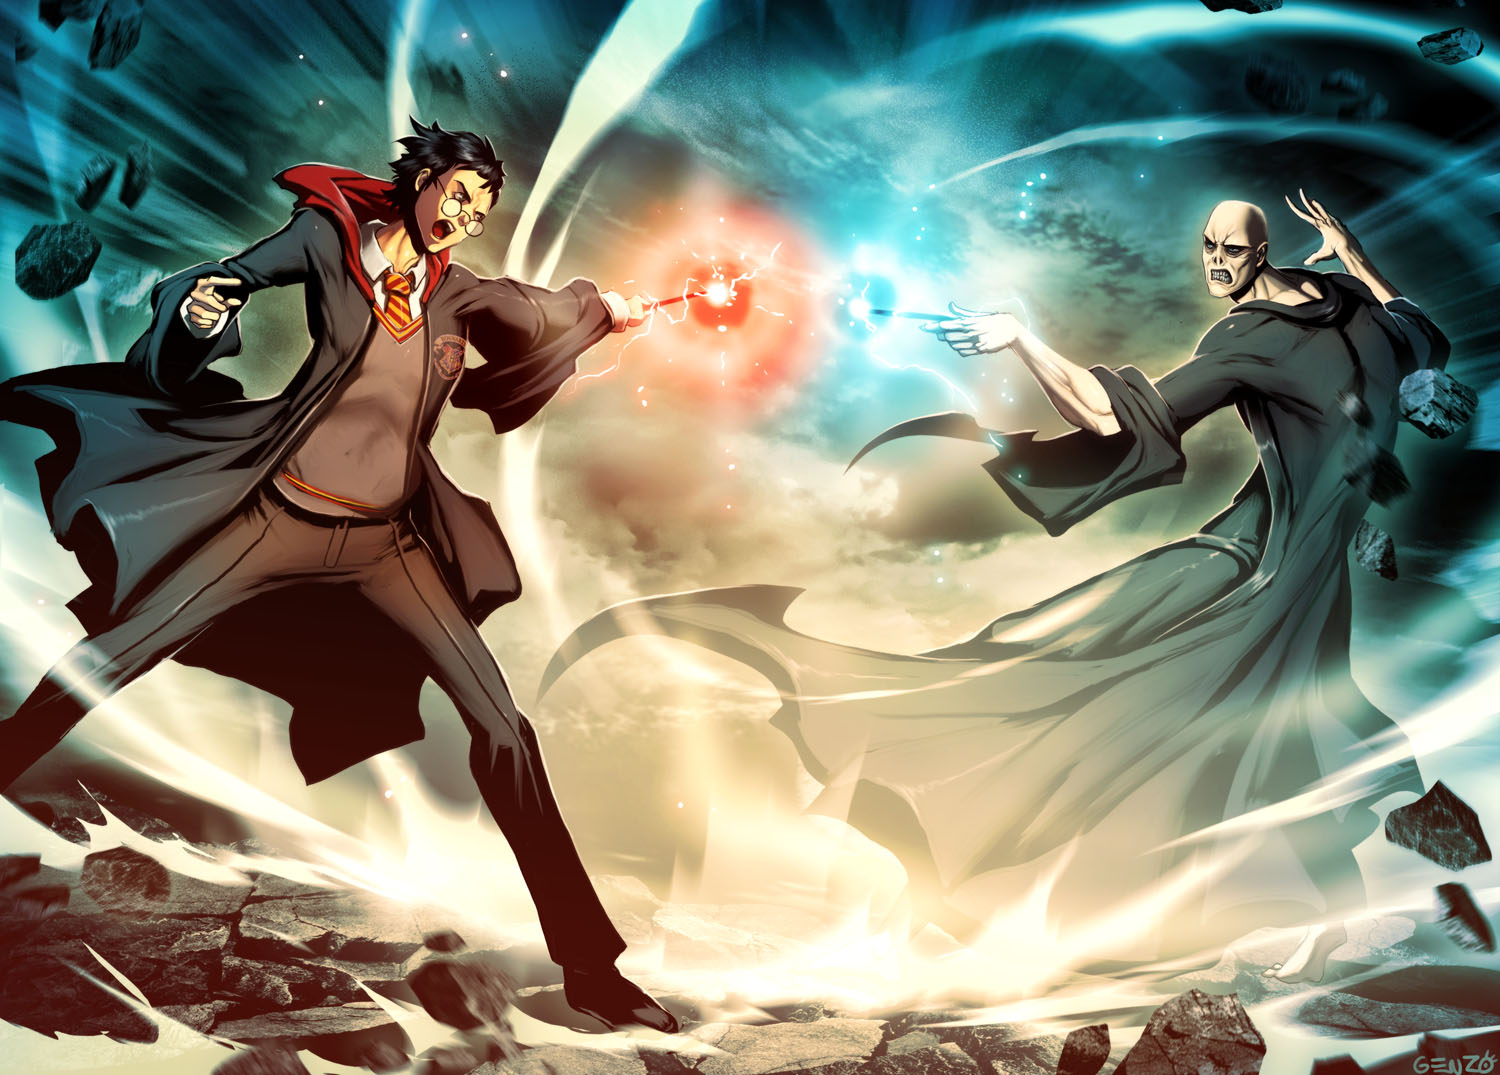 Amazing Wallpaper Harry Potter Artwork - harry_potter_vs_voldemort_by_genzoman-d31uk51  Picture_607051.jpg